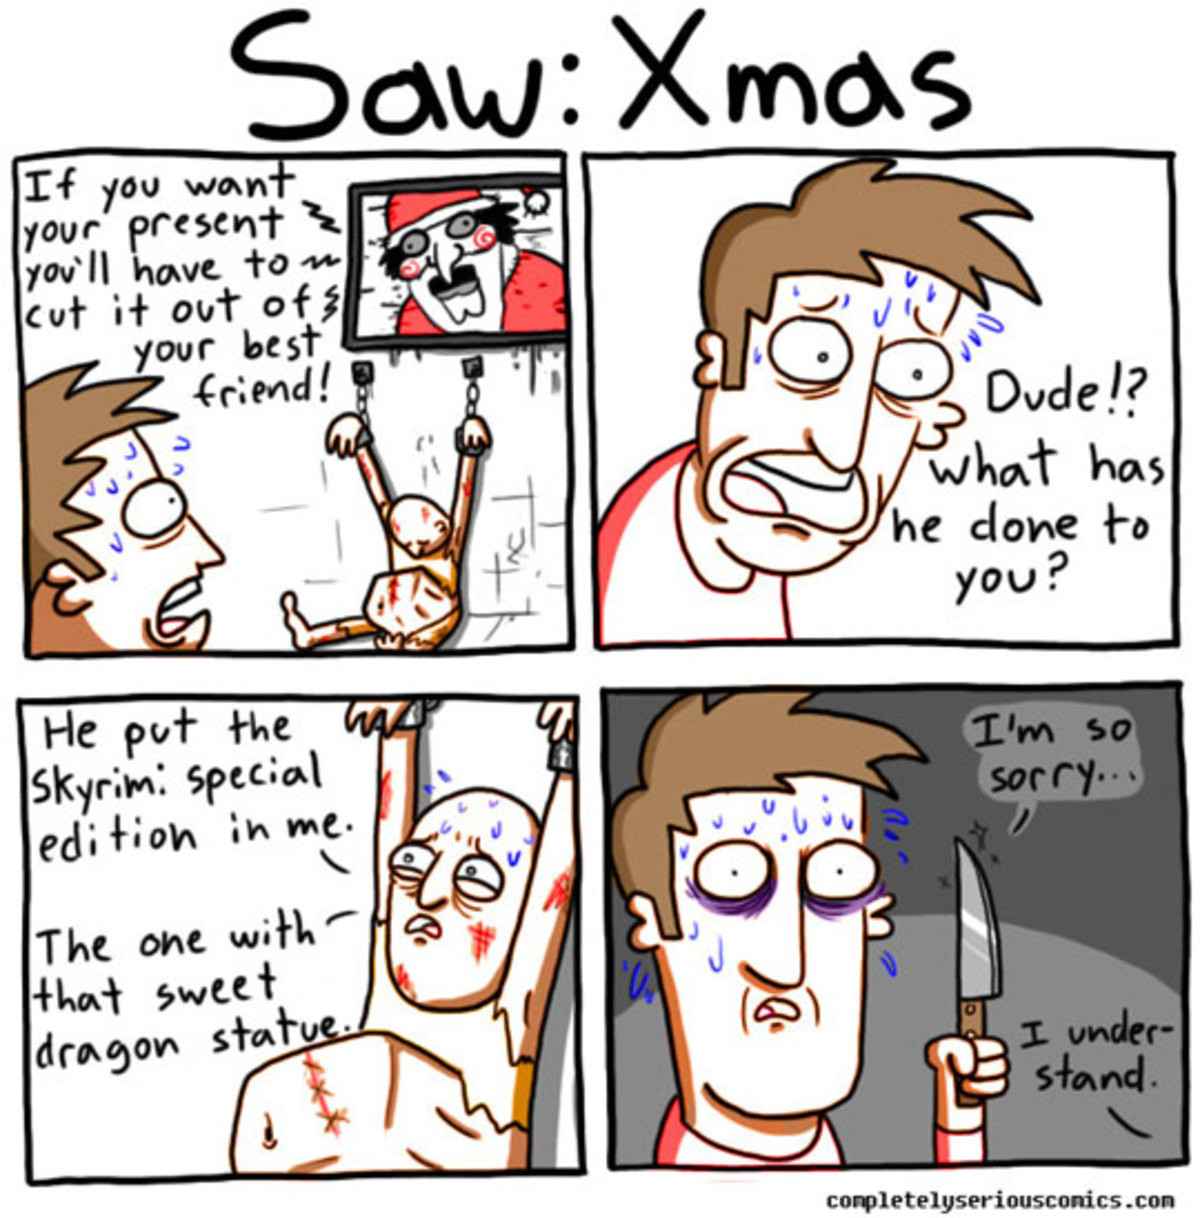 """SAW: Skyrim Edition"". .. wow haha, I love playing skyrim special edition, it's definitely still relevant now. IN FACT, YOU CAN SAVE 40% ON SKYRIM SPECIAL EDITION RIGHT NOW ON STEAM: htt"